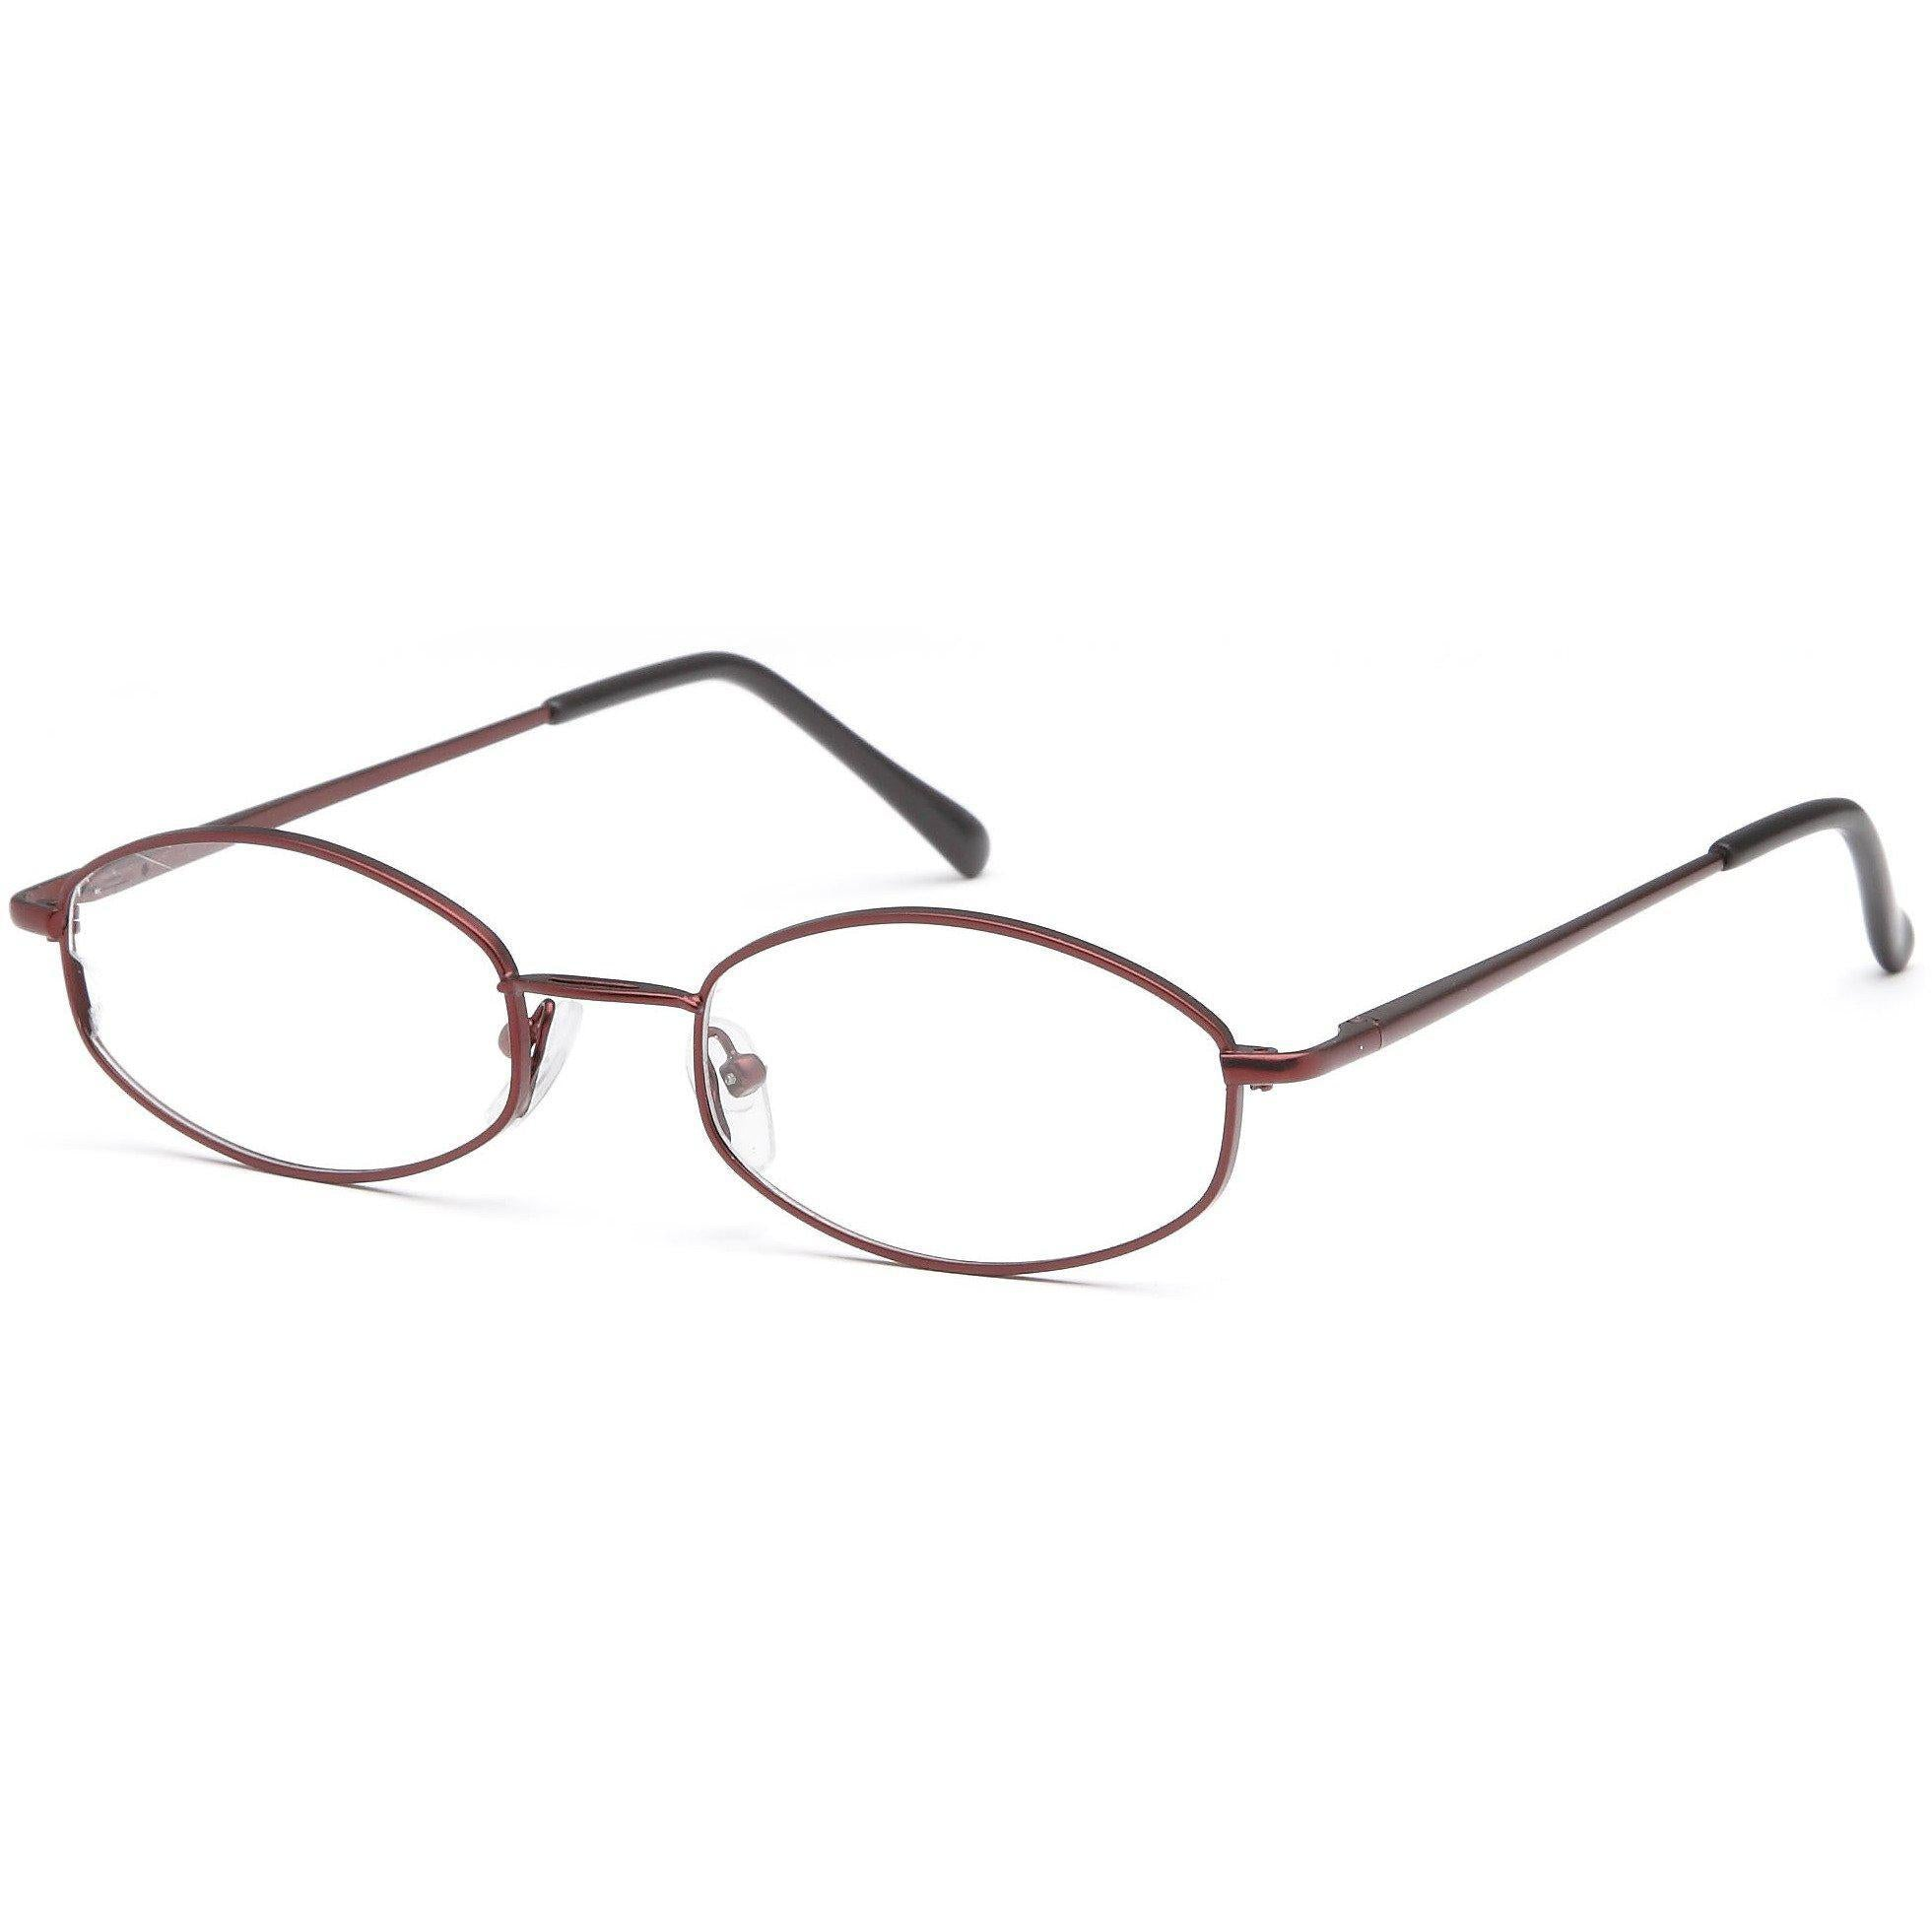 Appletree Prescription Glasses 7710 Eyeglasses Frames